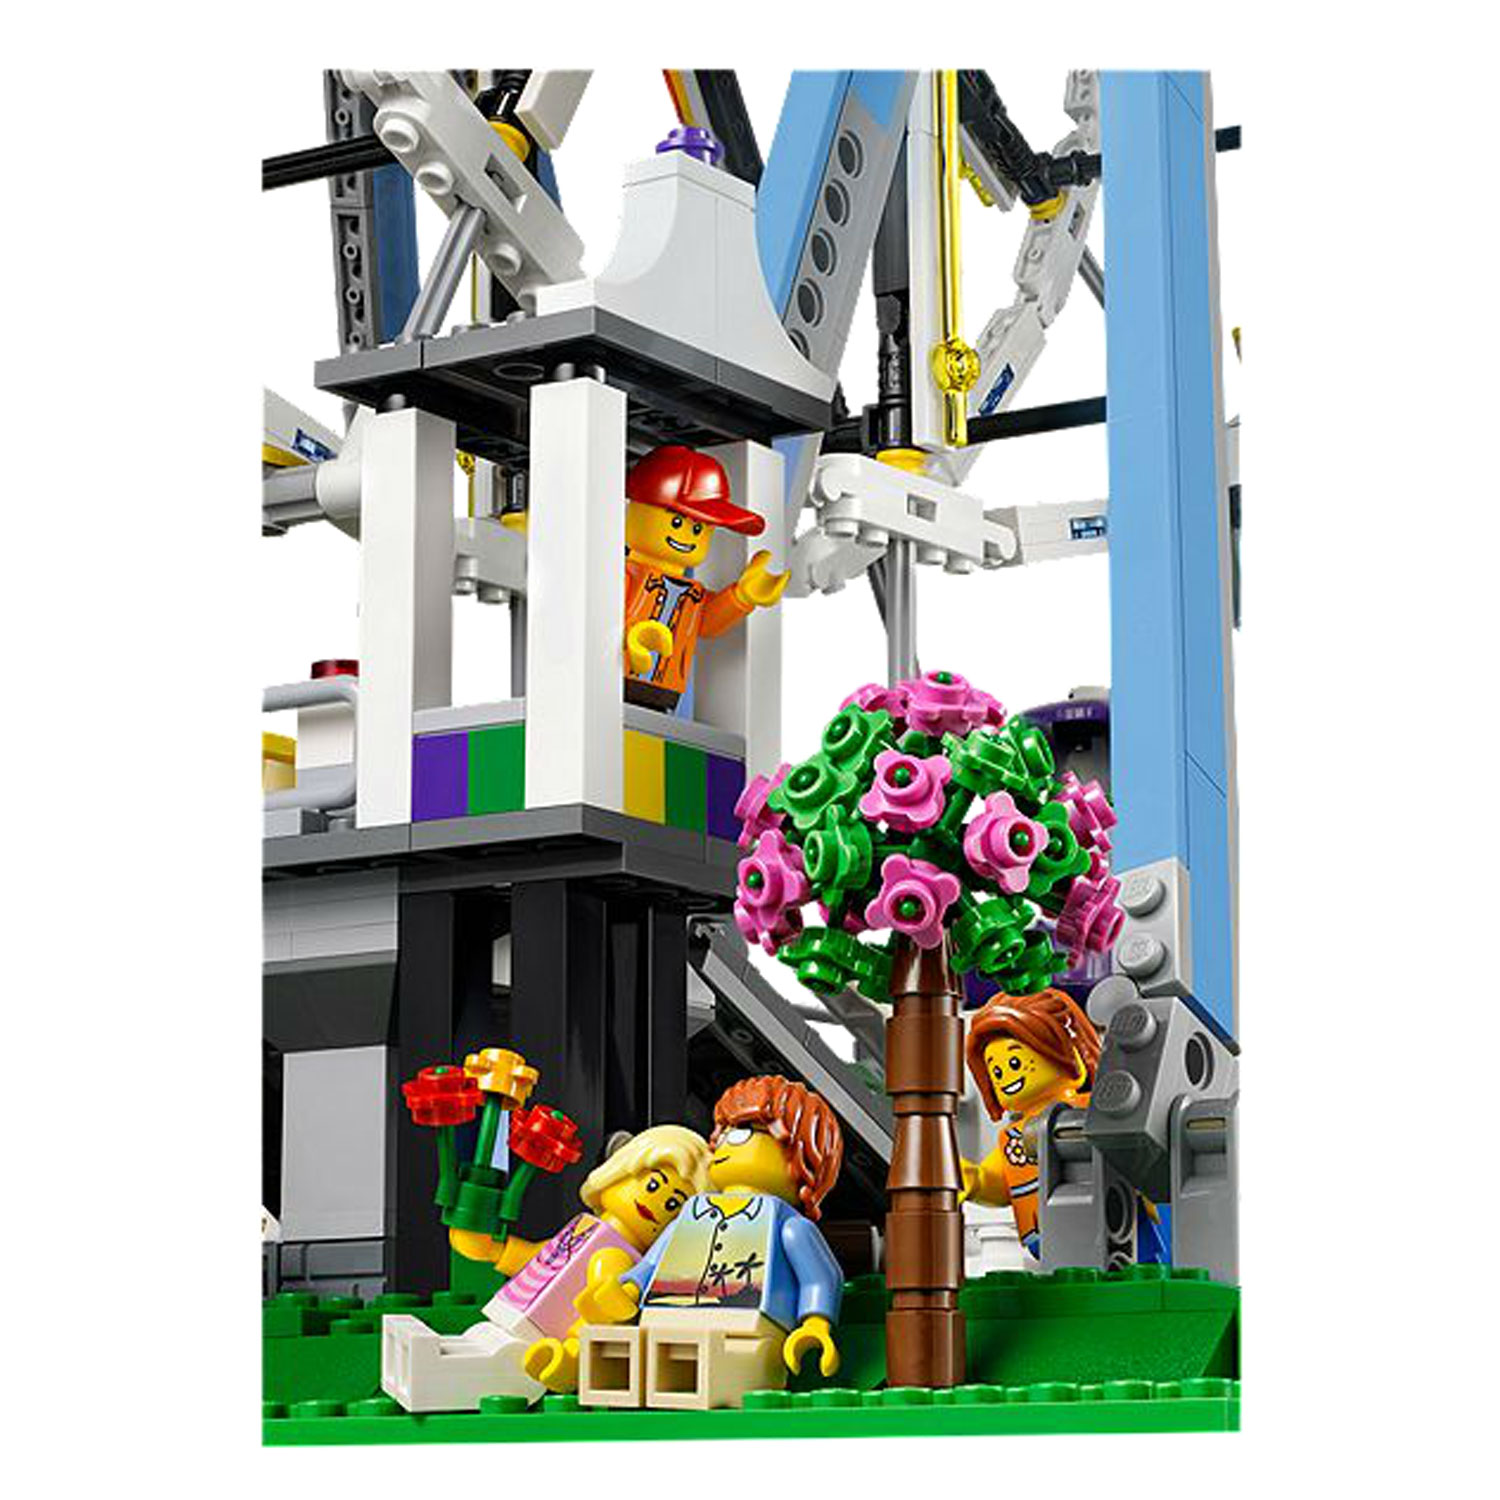 lego 10247 creator la grande roue comparer avec. Black Bedroom Furniture Sets. Home Design Ideas